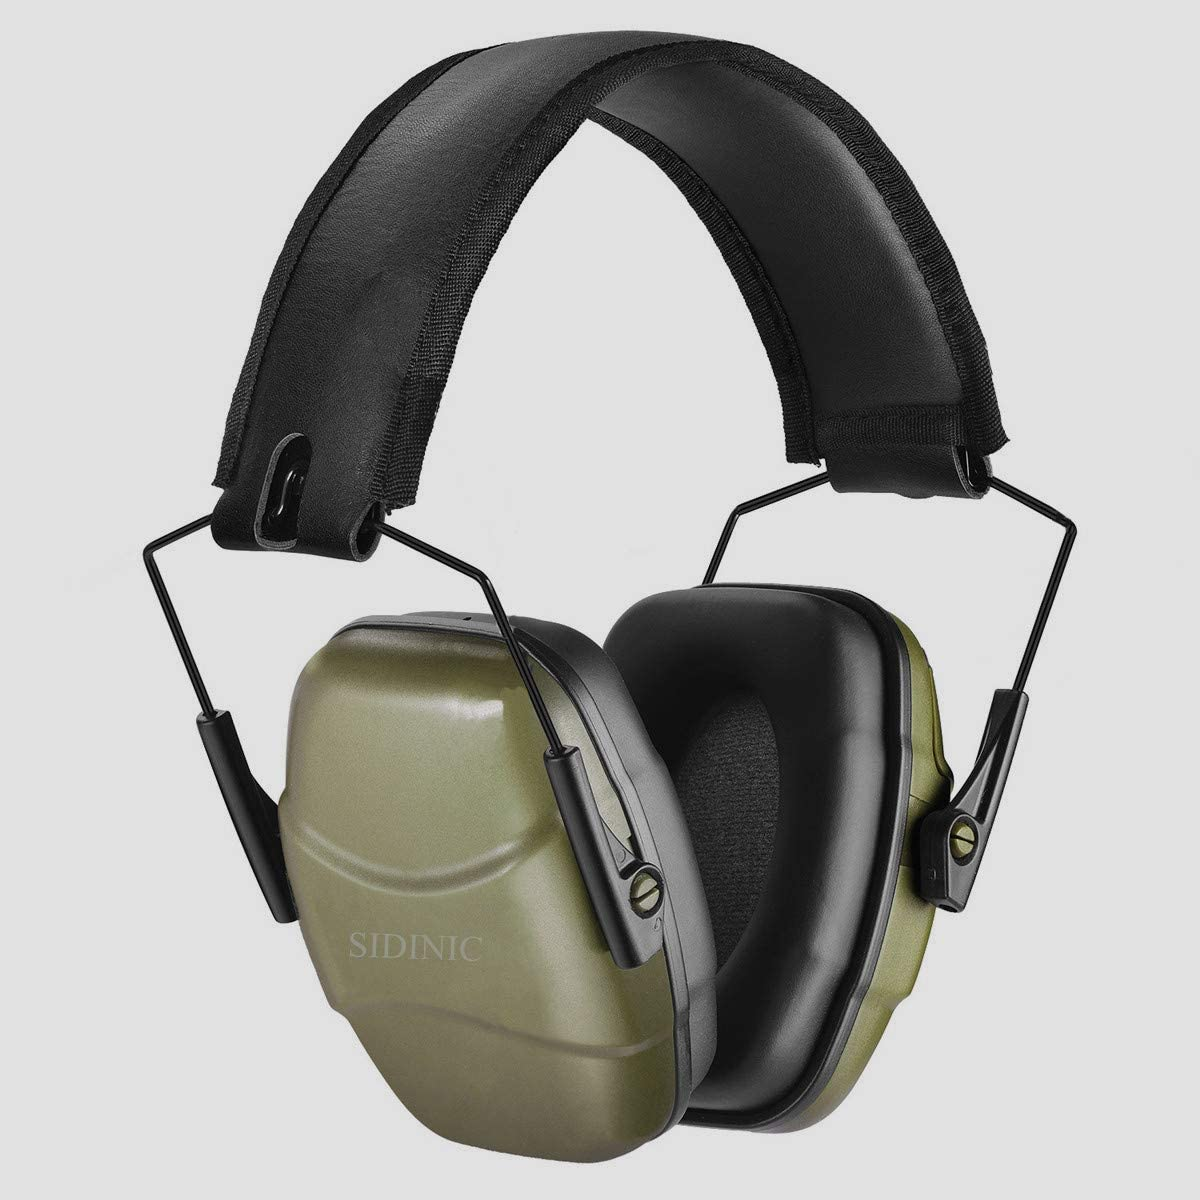 GUCHO 34 dB NRR Noise Reduction Safety Shooting Ear Muffs,Shooters Hearing Protection Adjustable Ear Muffs,Professional Ear Defenders for Shooting Hunting Fits Adults to Kids(Green)